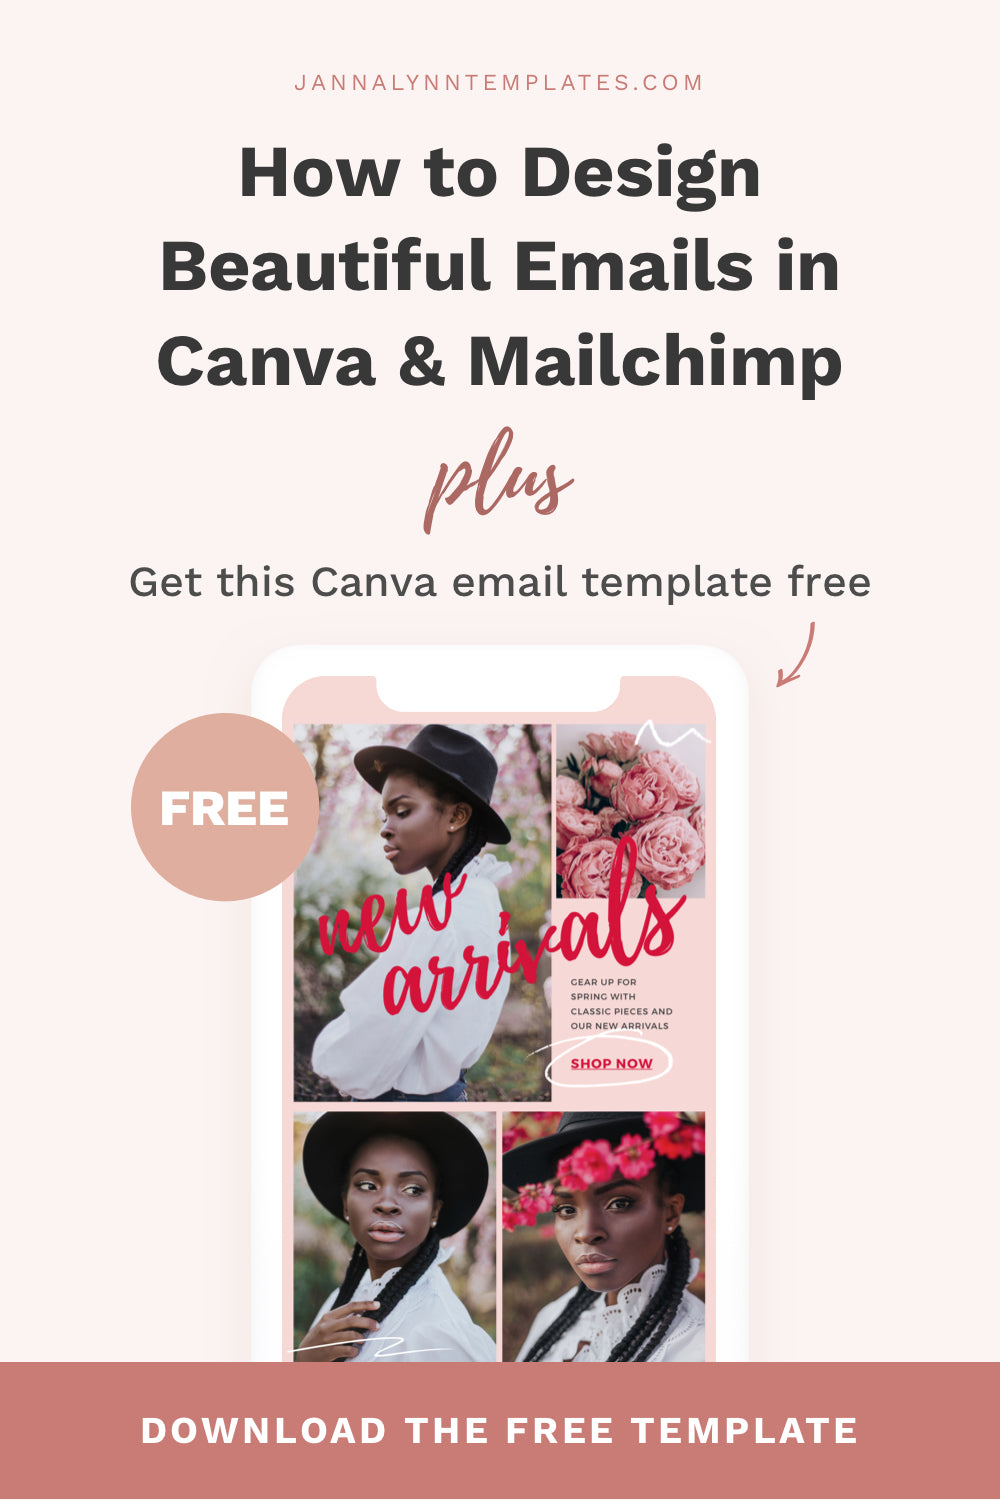 how to design email templates in canva and mailchimp